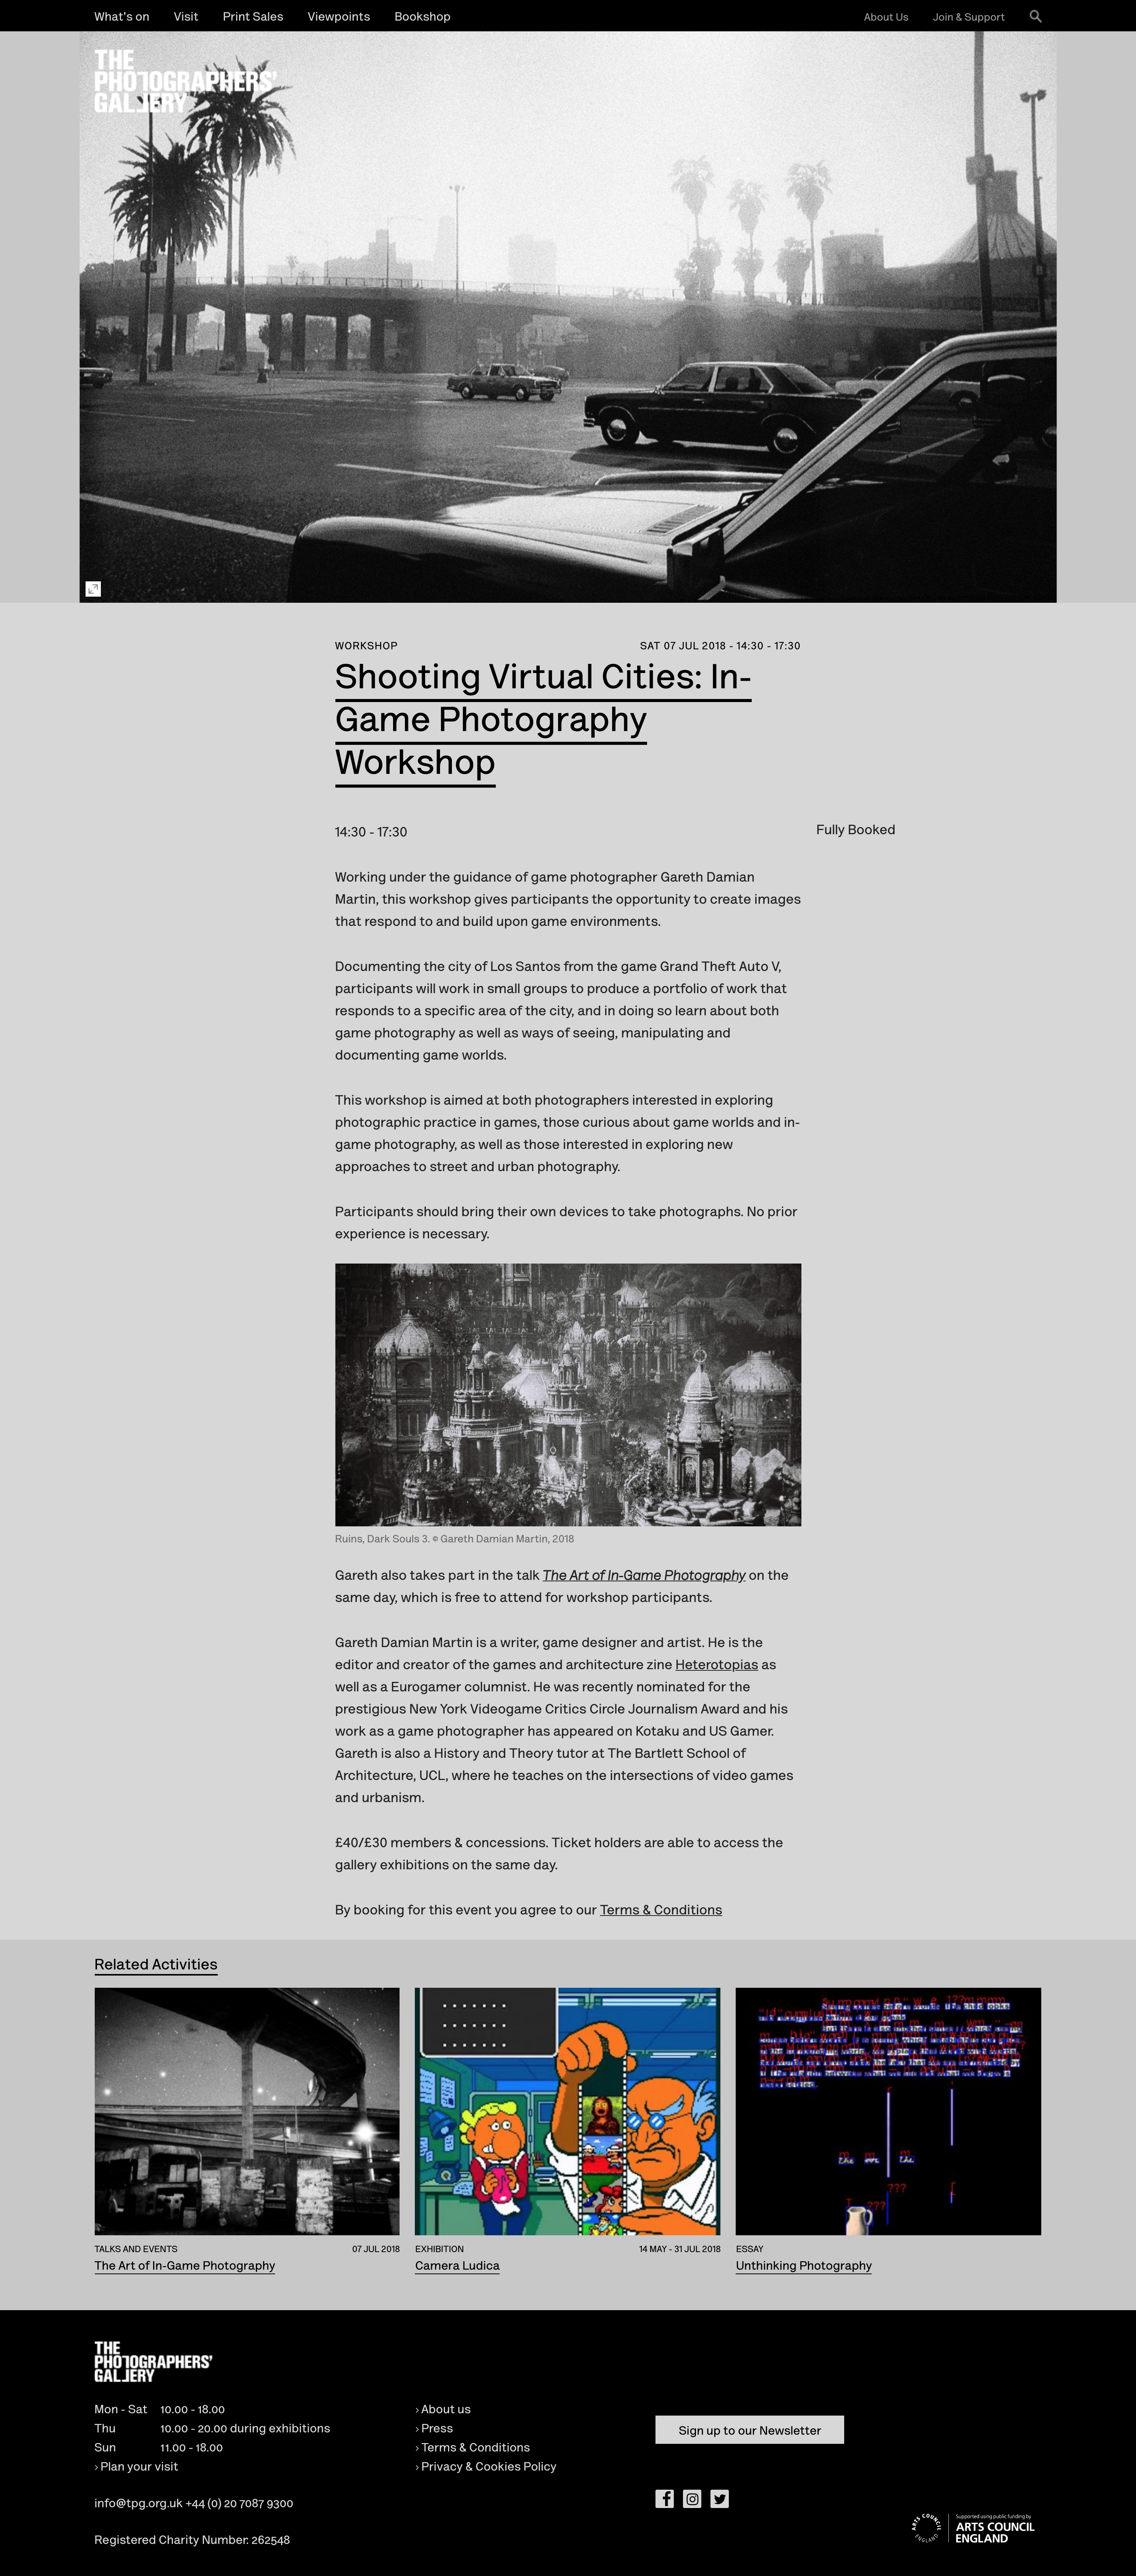 screencapture-thephotographersgallery-org-uk-whats-on-workshop-shooting-virtual-cities-game-photography-workshop-2018-07-10-16_19_21.png